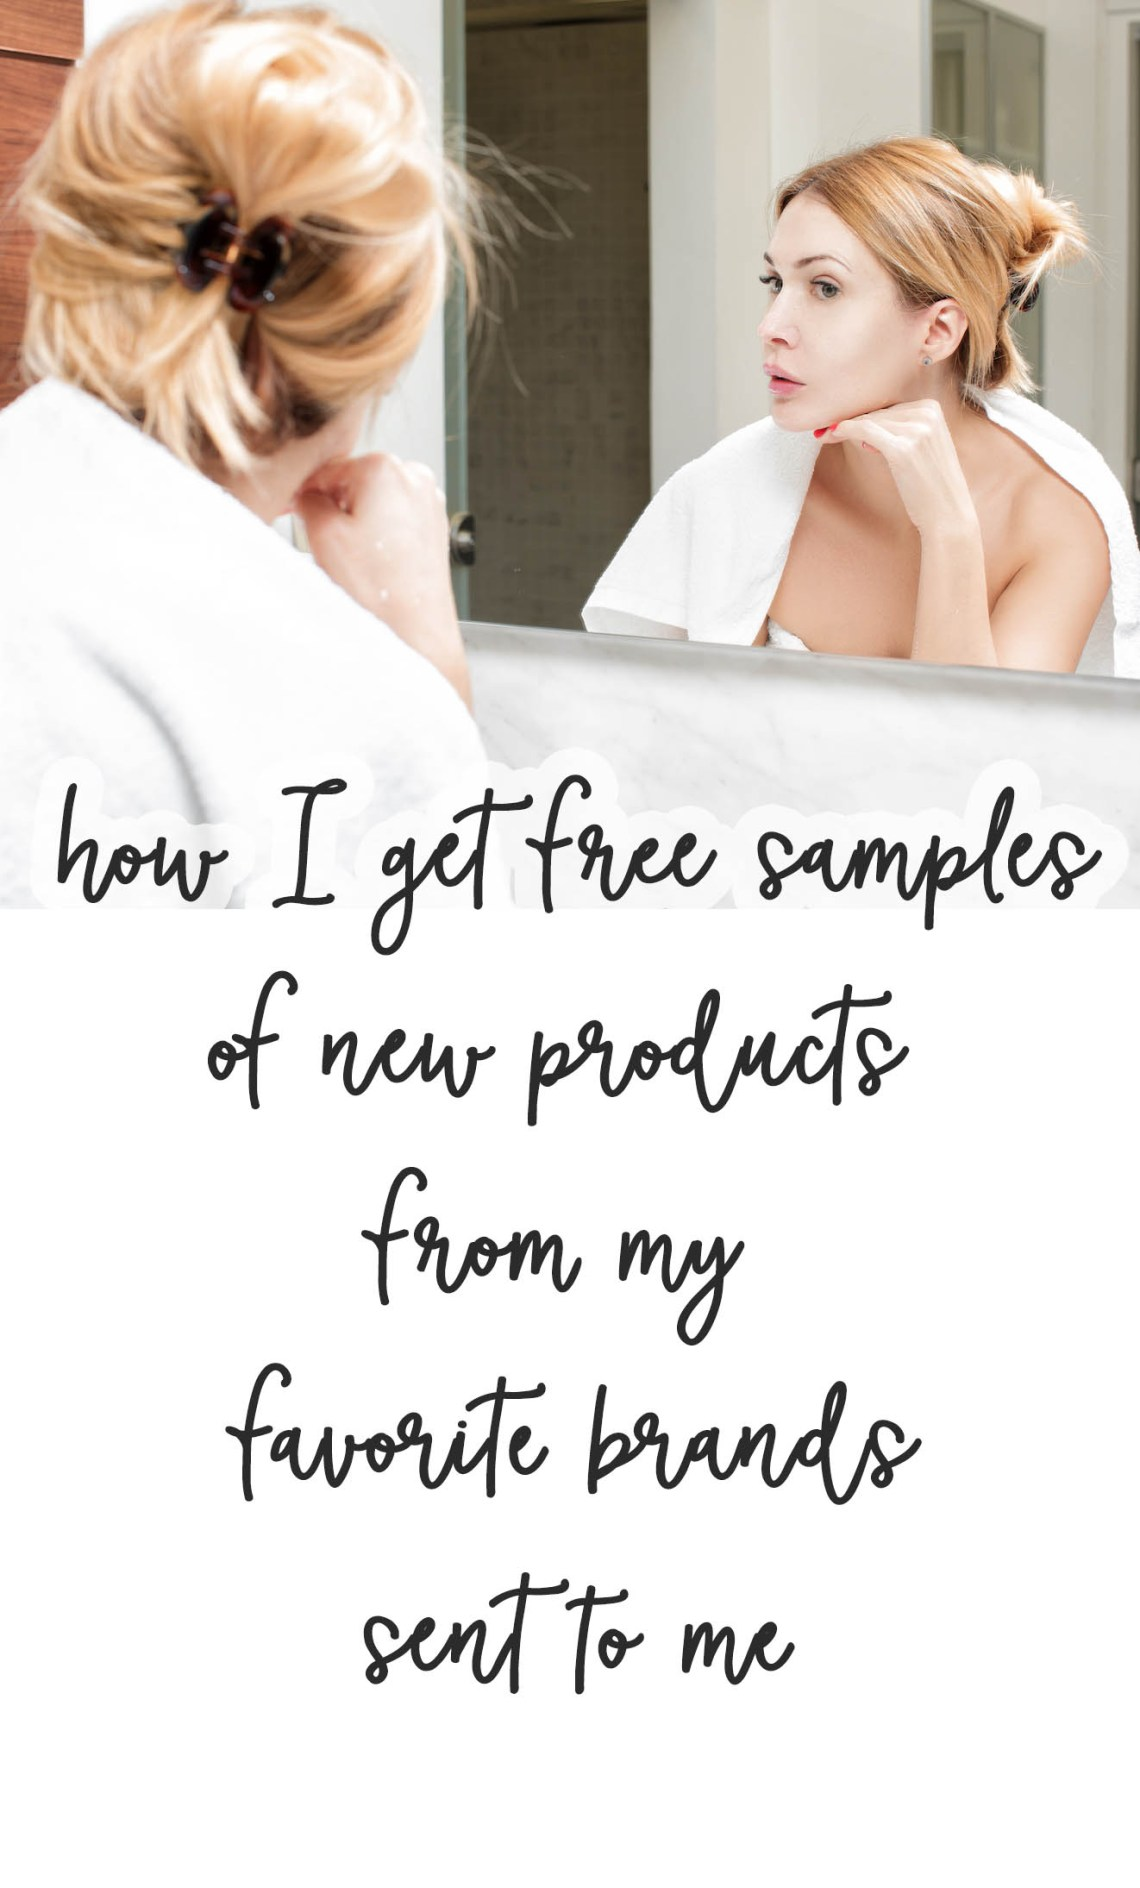 pinchme free samples in the mail - subscription box